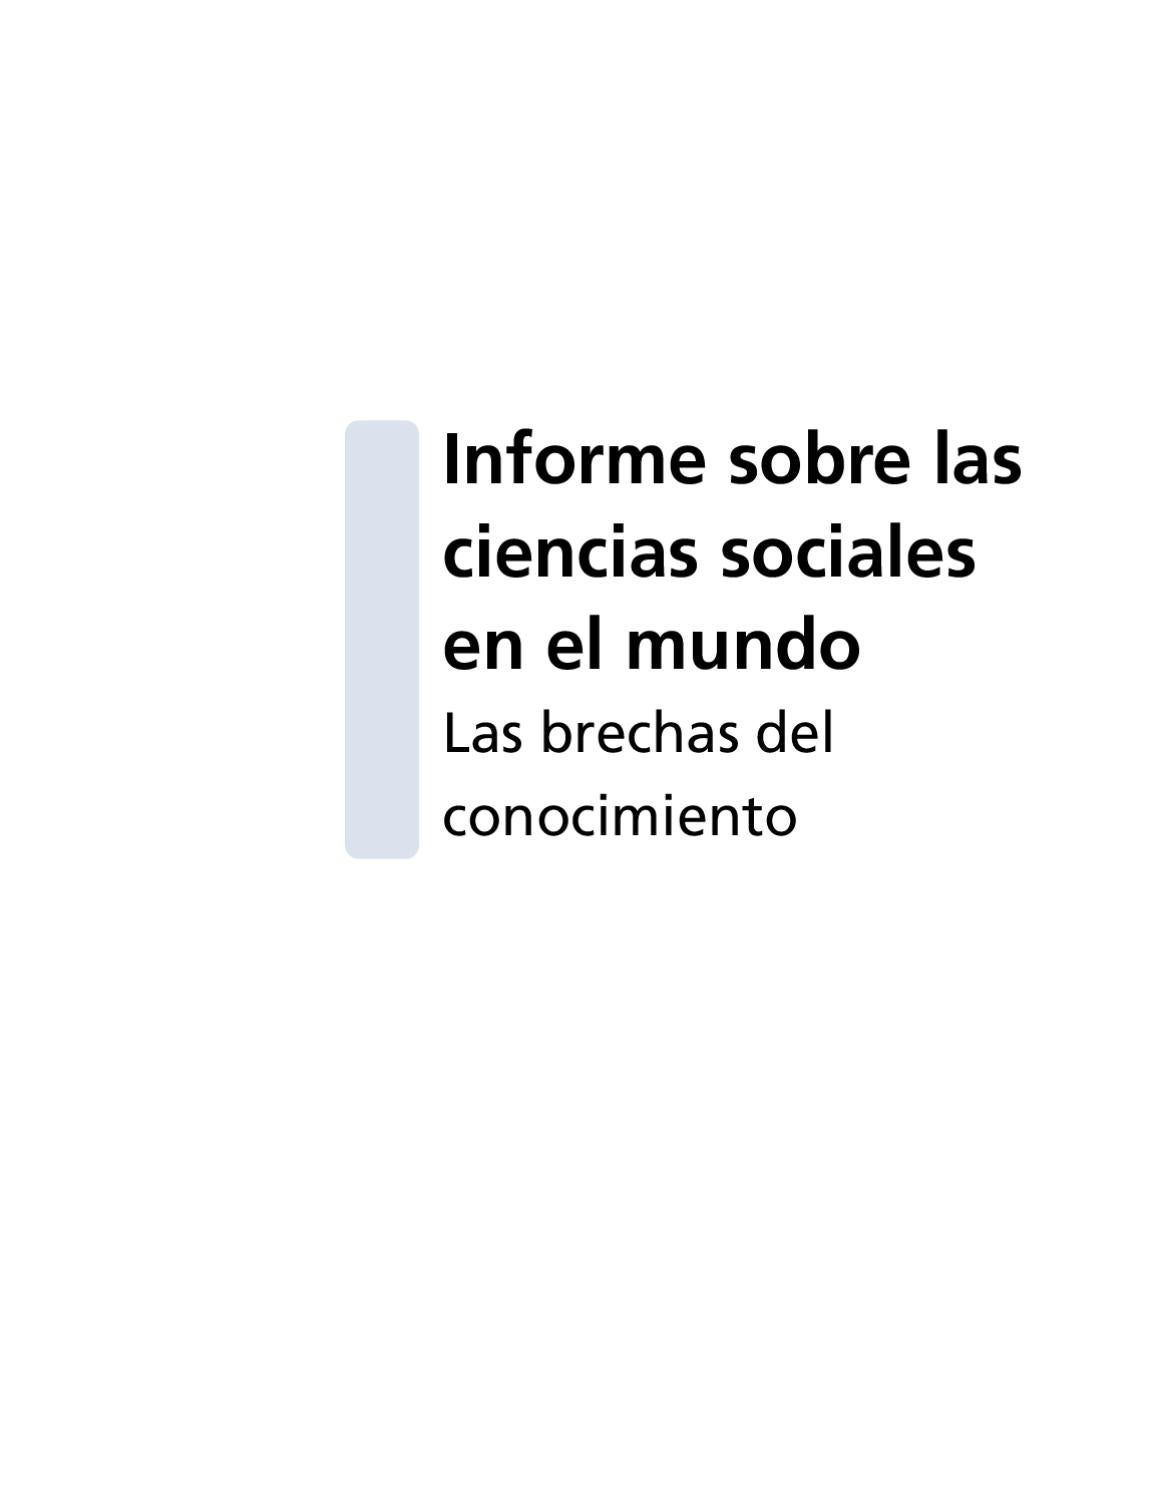 UNESCO: Informe sobre cs by Jaime Nunez - issuu